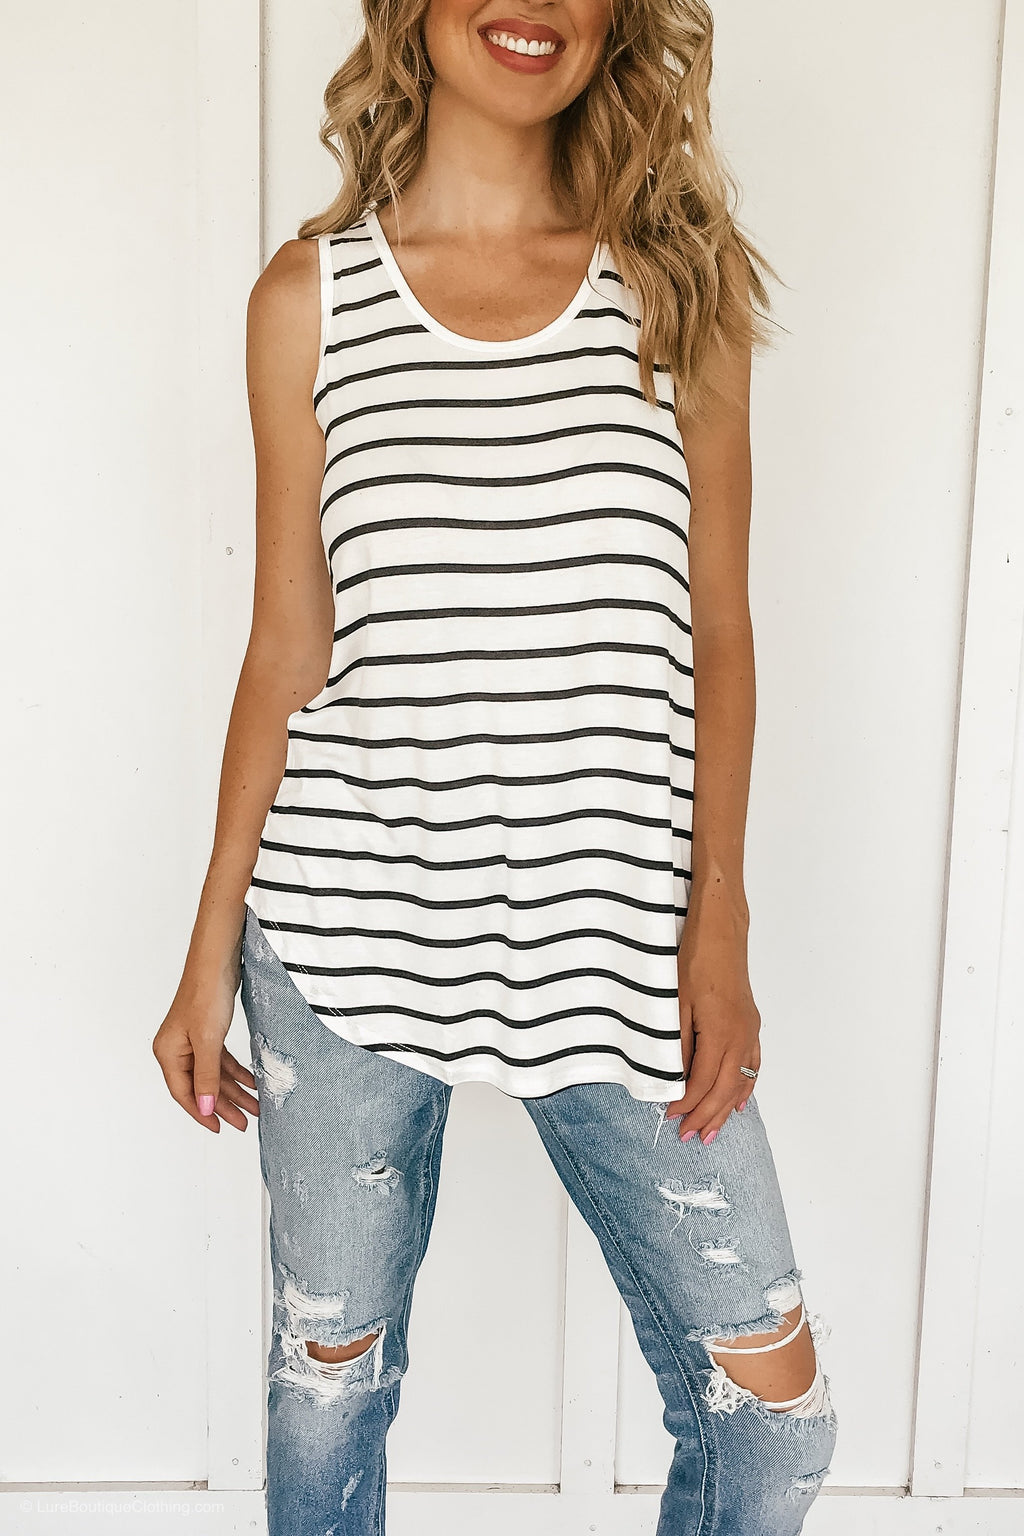 Savanna Striped Tunic Tank - LURE Boutique